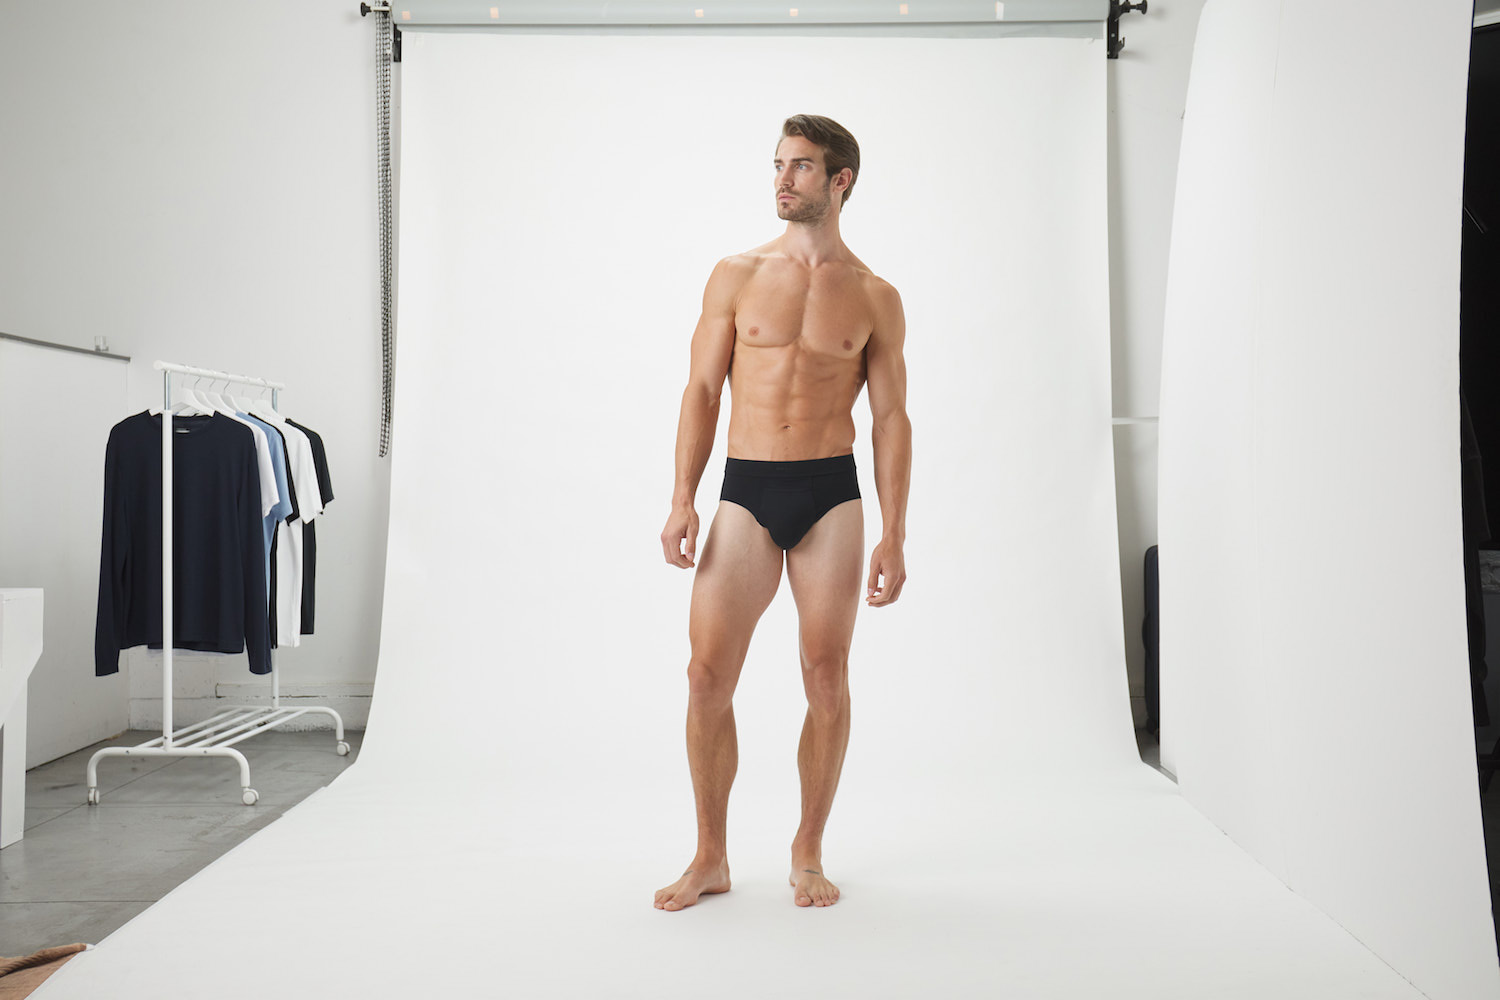 Model-Onmodel-in-studio-instudio-Damion-Lloyd-Photography-Commercial-Product-Apparel-Clothing-Los-Angeles-Orange-County-male-man-Jack-Archer-black-brief-side